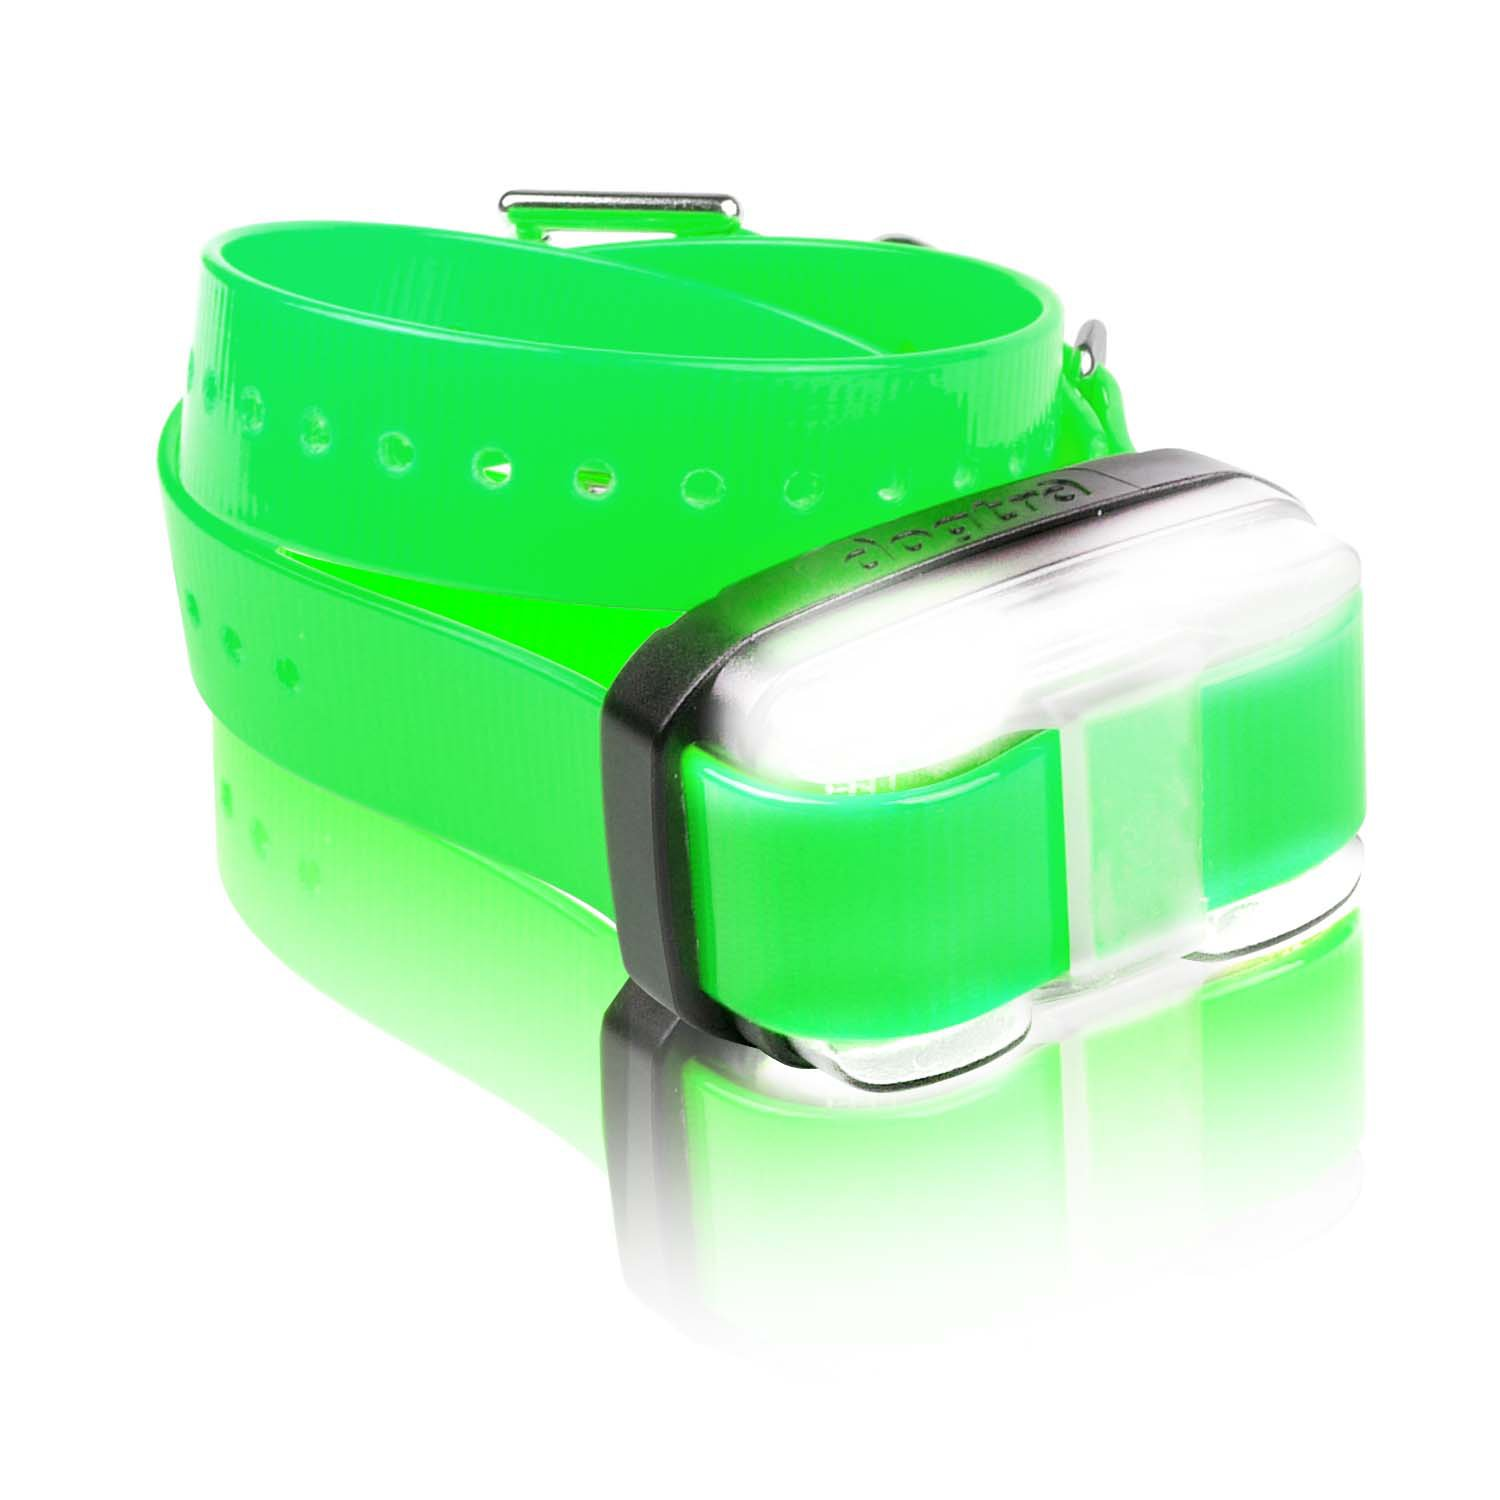 Dogtra Edge Add-On Receiver Dog Training Collar in Green